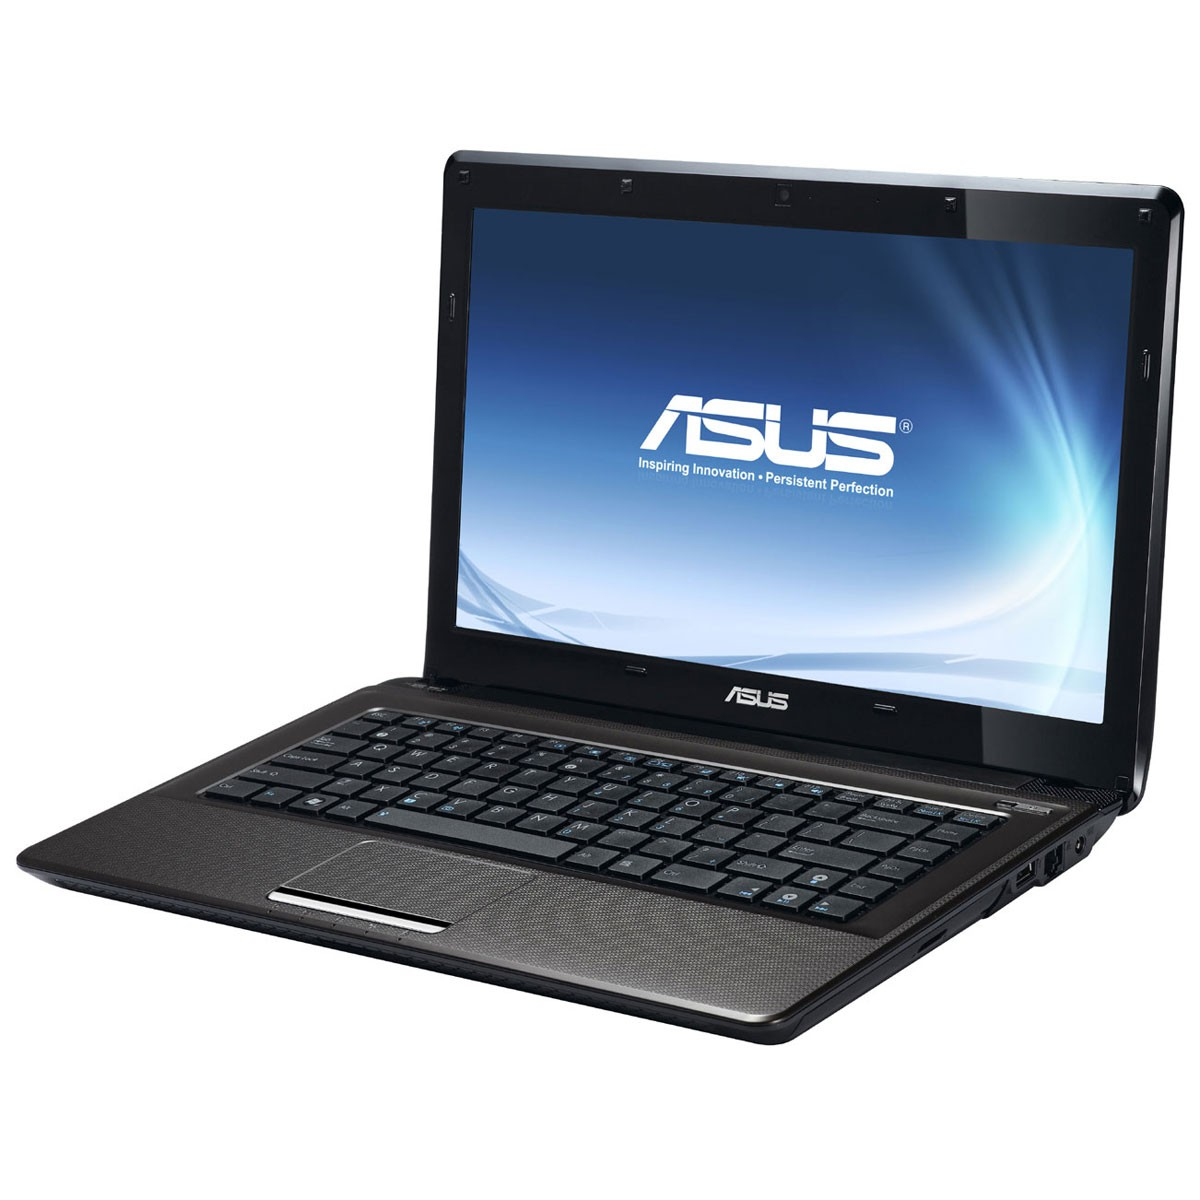 ASUS K42JK NOTEBOOK WEBCAM DRIVER FOR WINDOWS